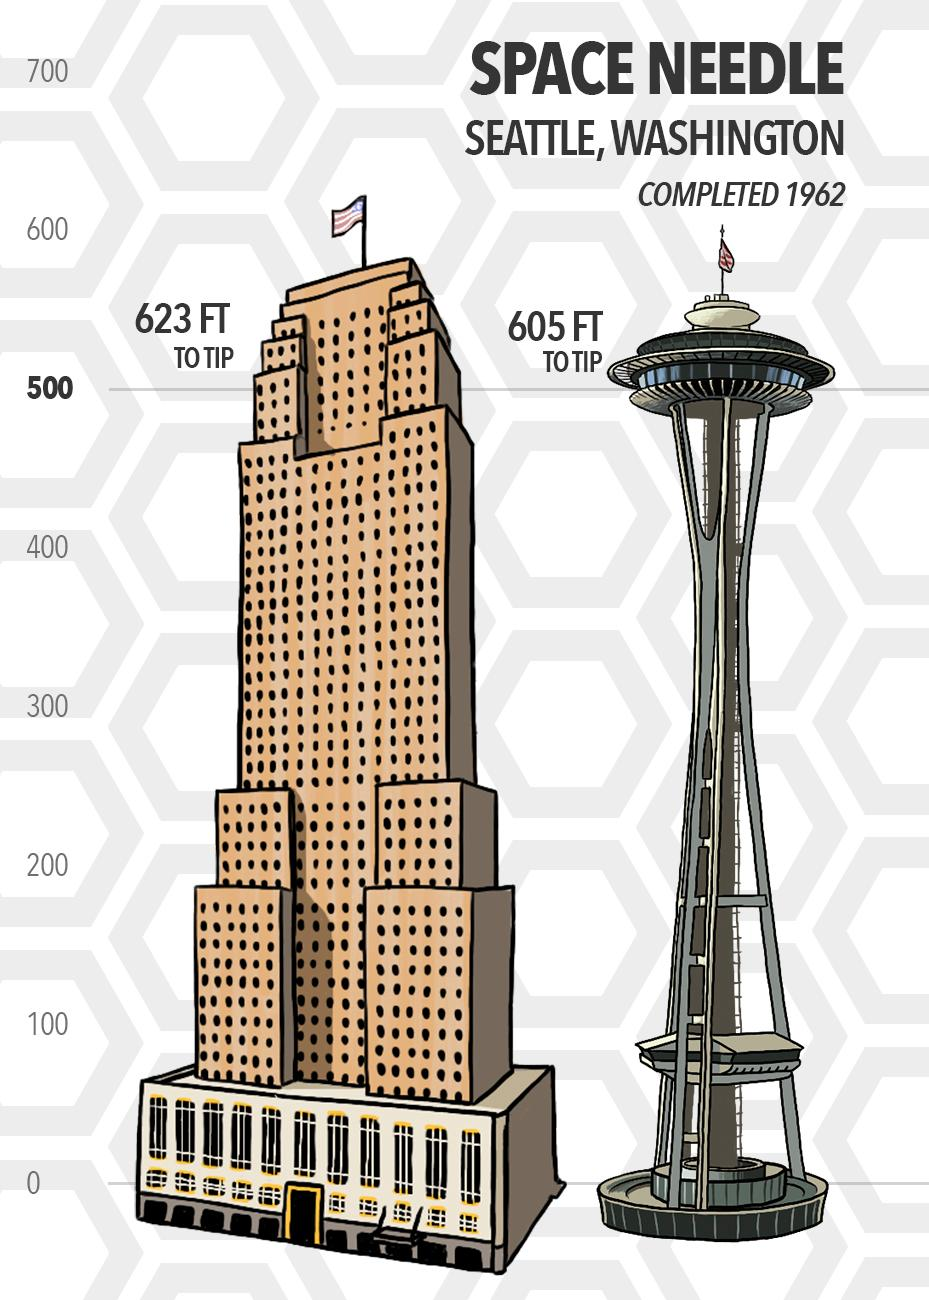 Seattle, Washington's Space Needle is only eight feet shorter than the Carew Tower. Measured to its tip, it stands a total of 605 feet tall. The Space Needle was built 32 years after Carew Tower. (Source: SkyscraperCenter.com) / Image: Phil Armstrong // Published: 5.15.19